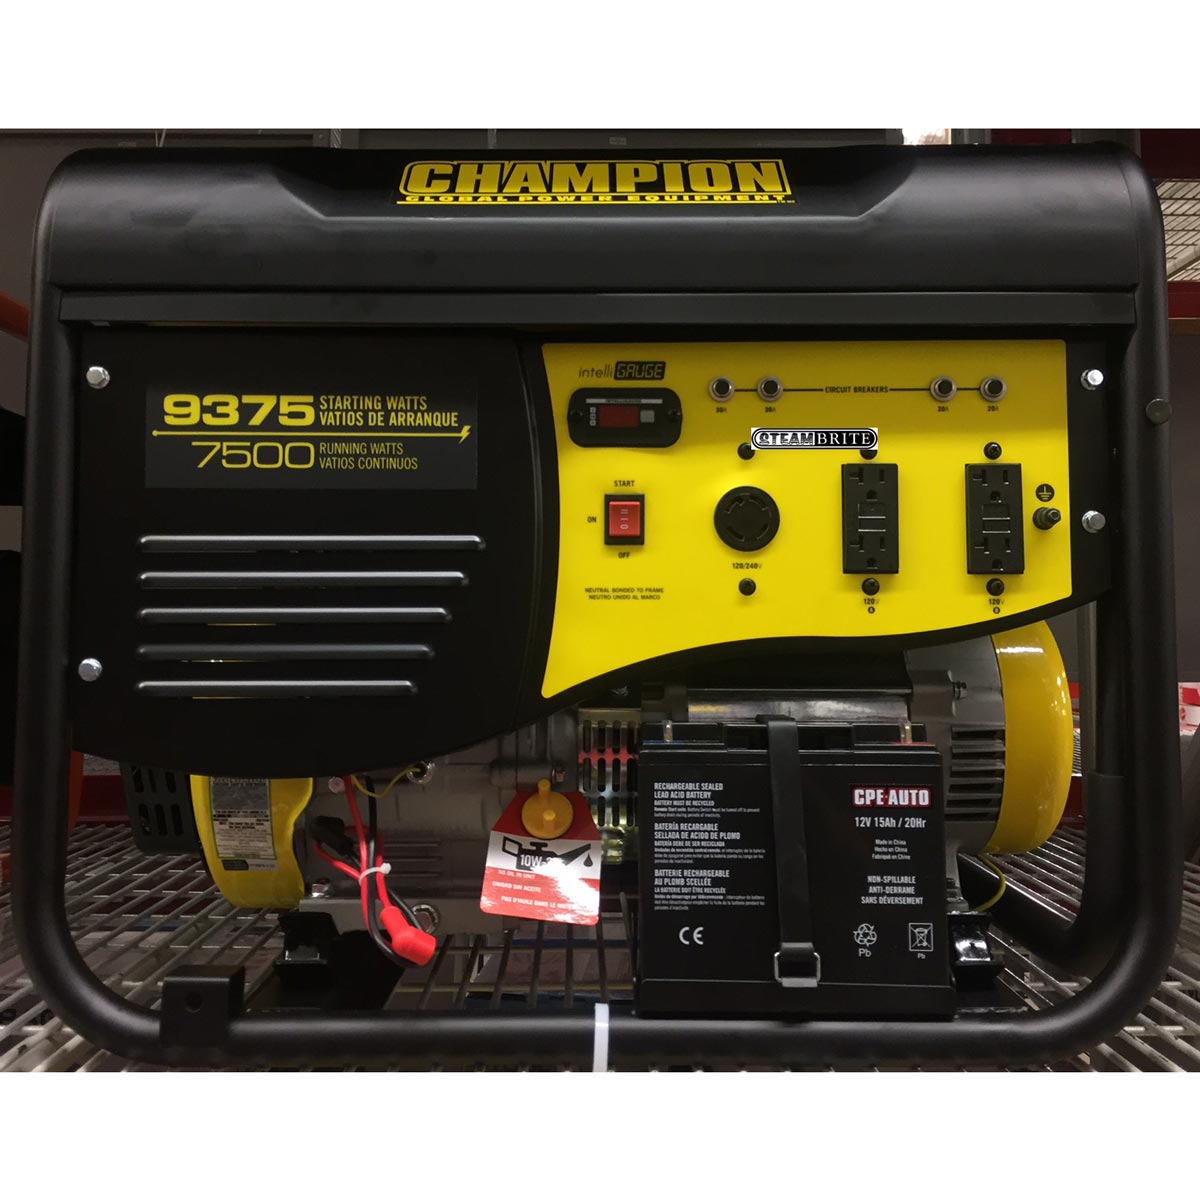 Champion Power Equipment 100219 Electric Start Generator 9375 Surge 7500 Watt Run 439cc CA Approved Engine 3 Year Warranty